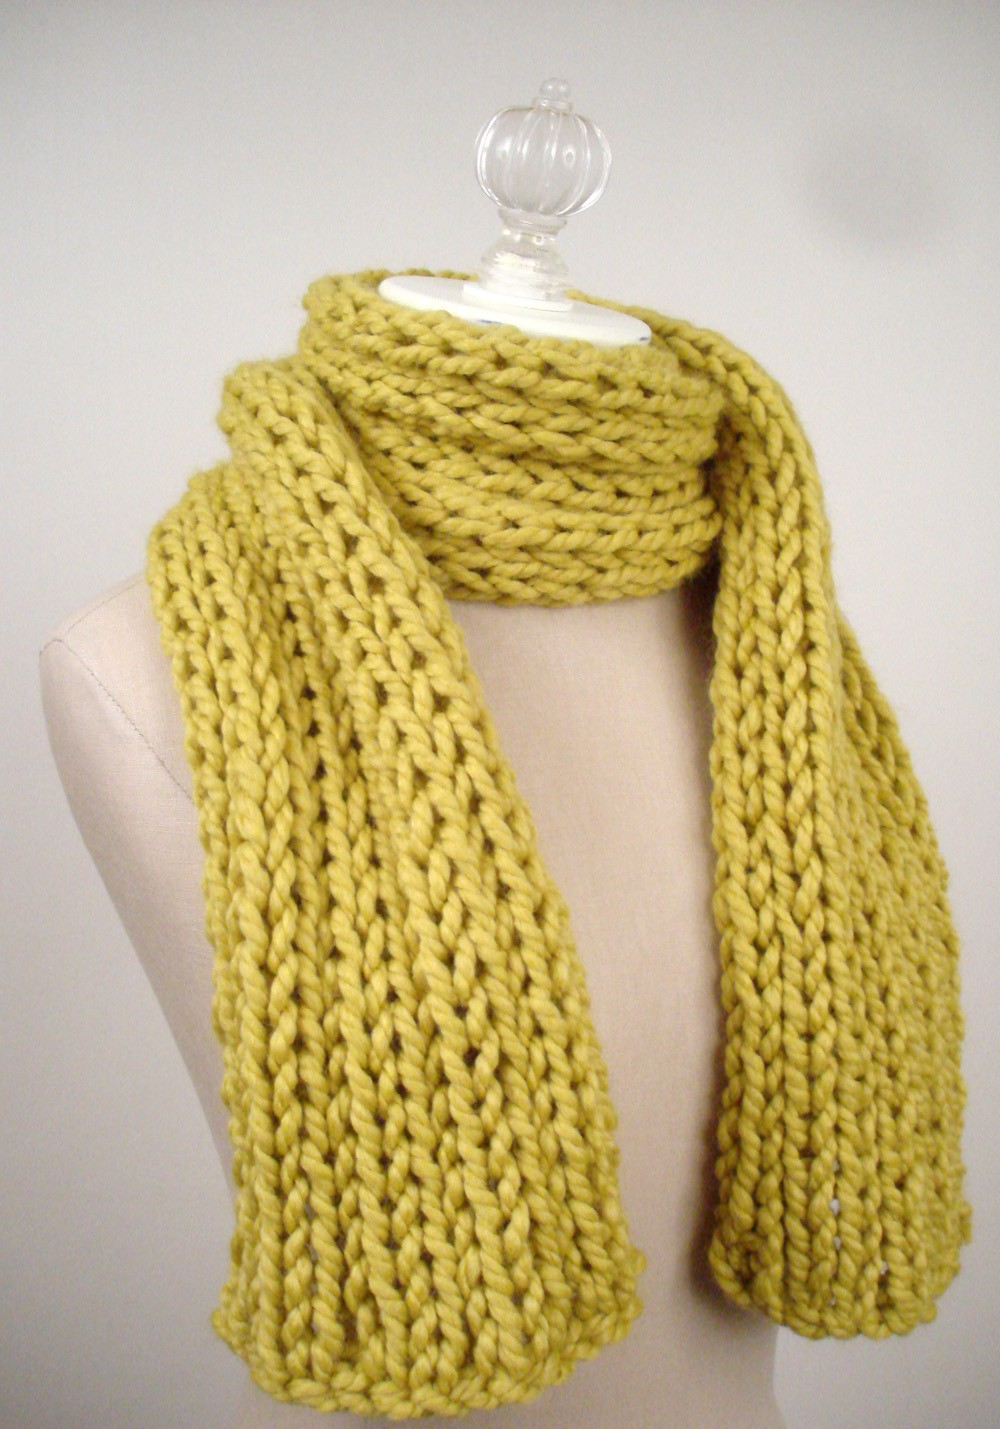 Easy Knitting Patterns For Beginners Free : EASY KNIT SCARF PATTERNS   Free Patterns